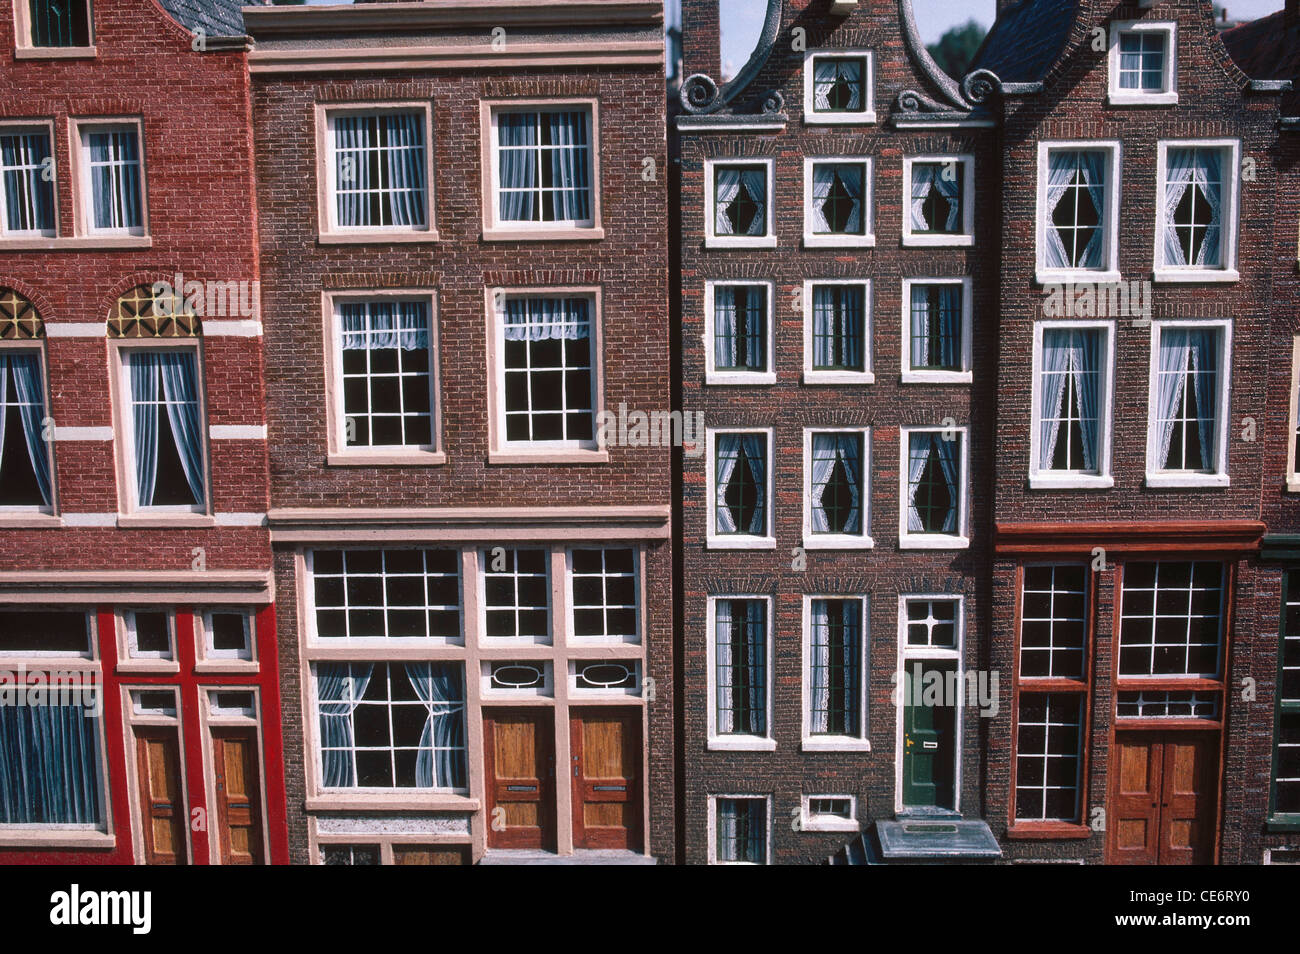 JAA 87837  doors and windows to scale of houses homes miniature city madurodam the hague dan haag Holland netherlands europe & JAA 87837 : doors and windows to scale of houses homes miniature ...